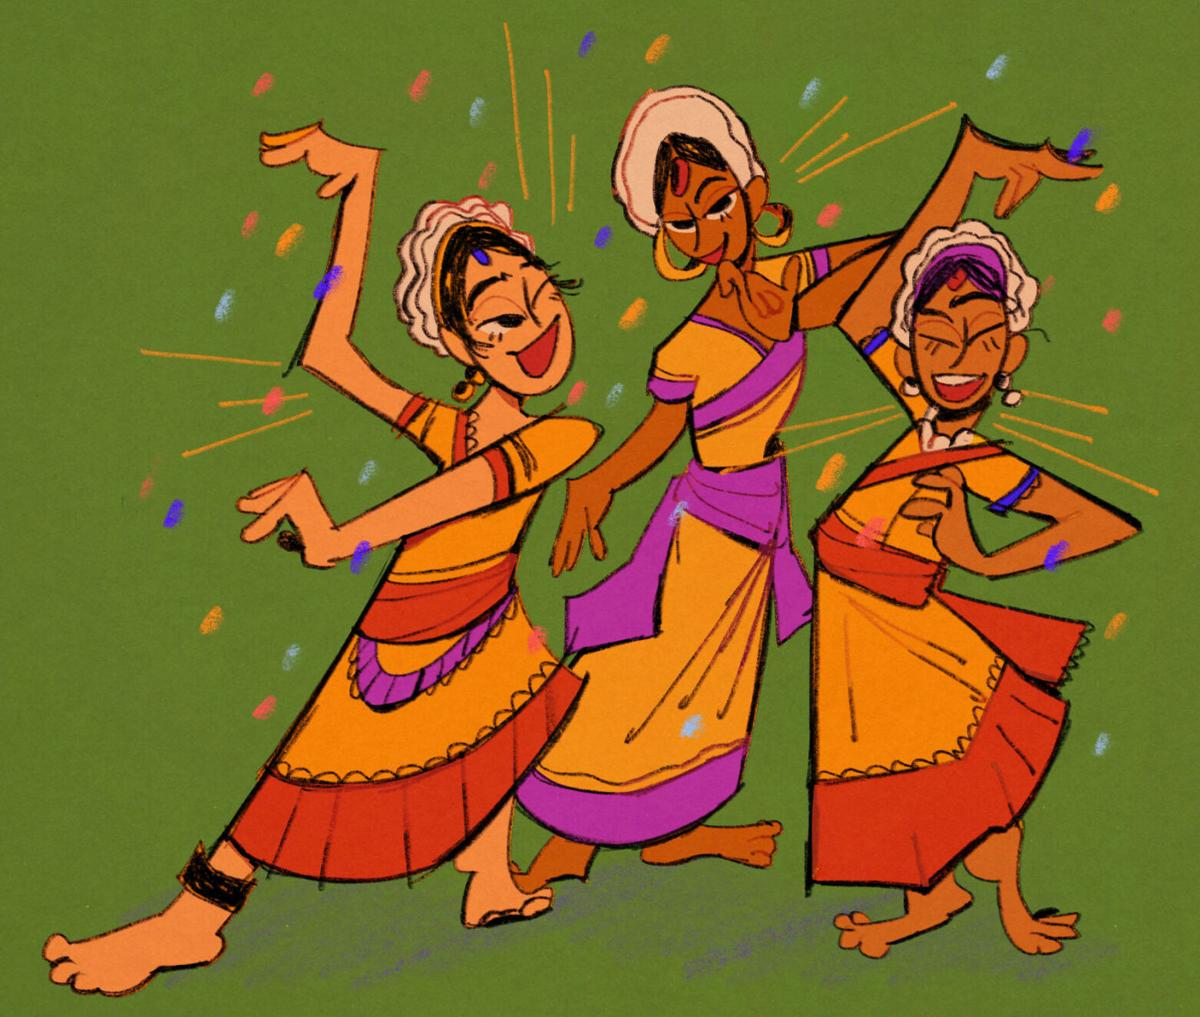 Opinion: The Indian celebrations I love have new meaning during the pandemic